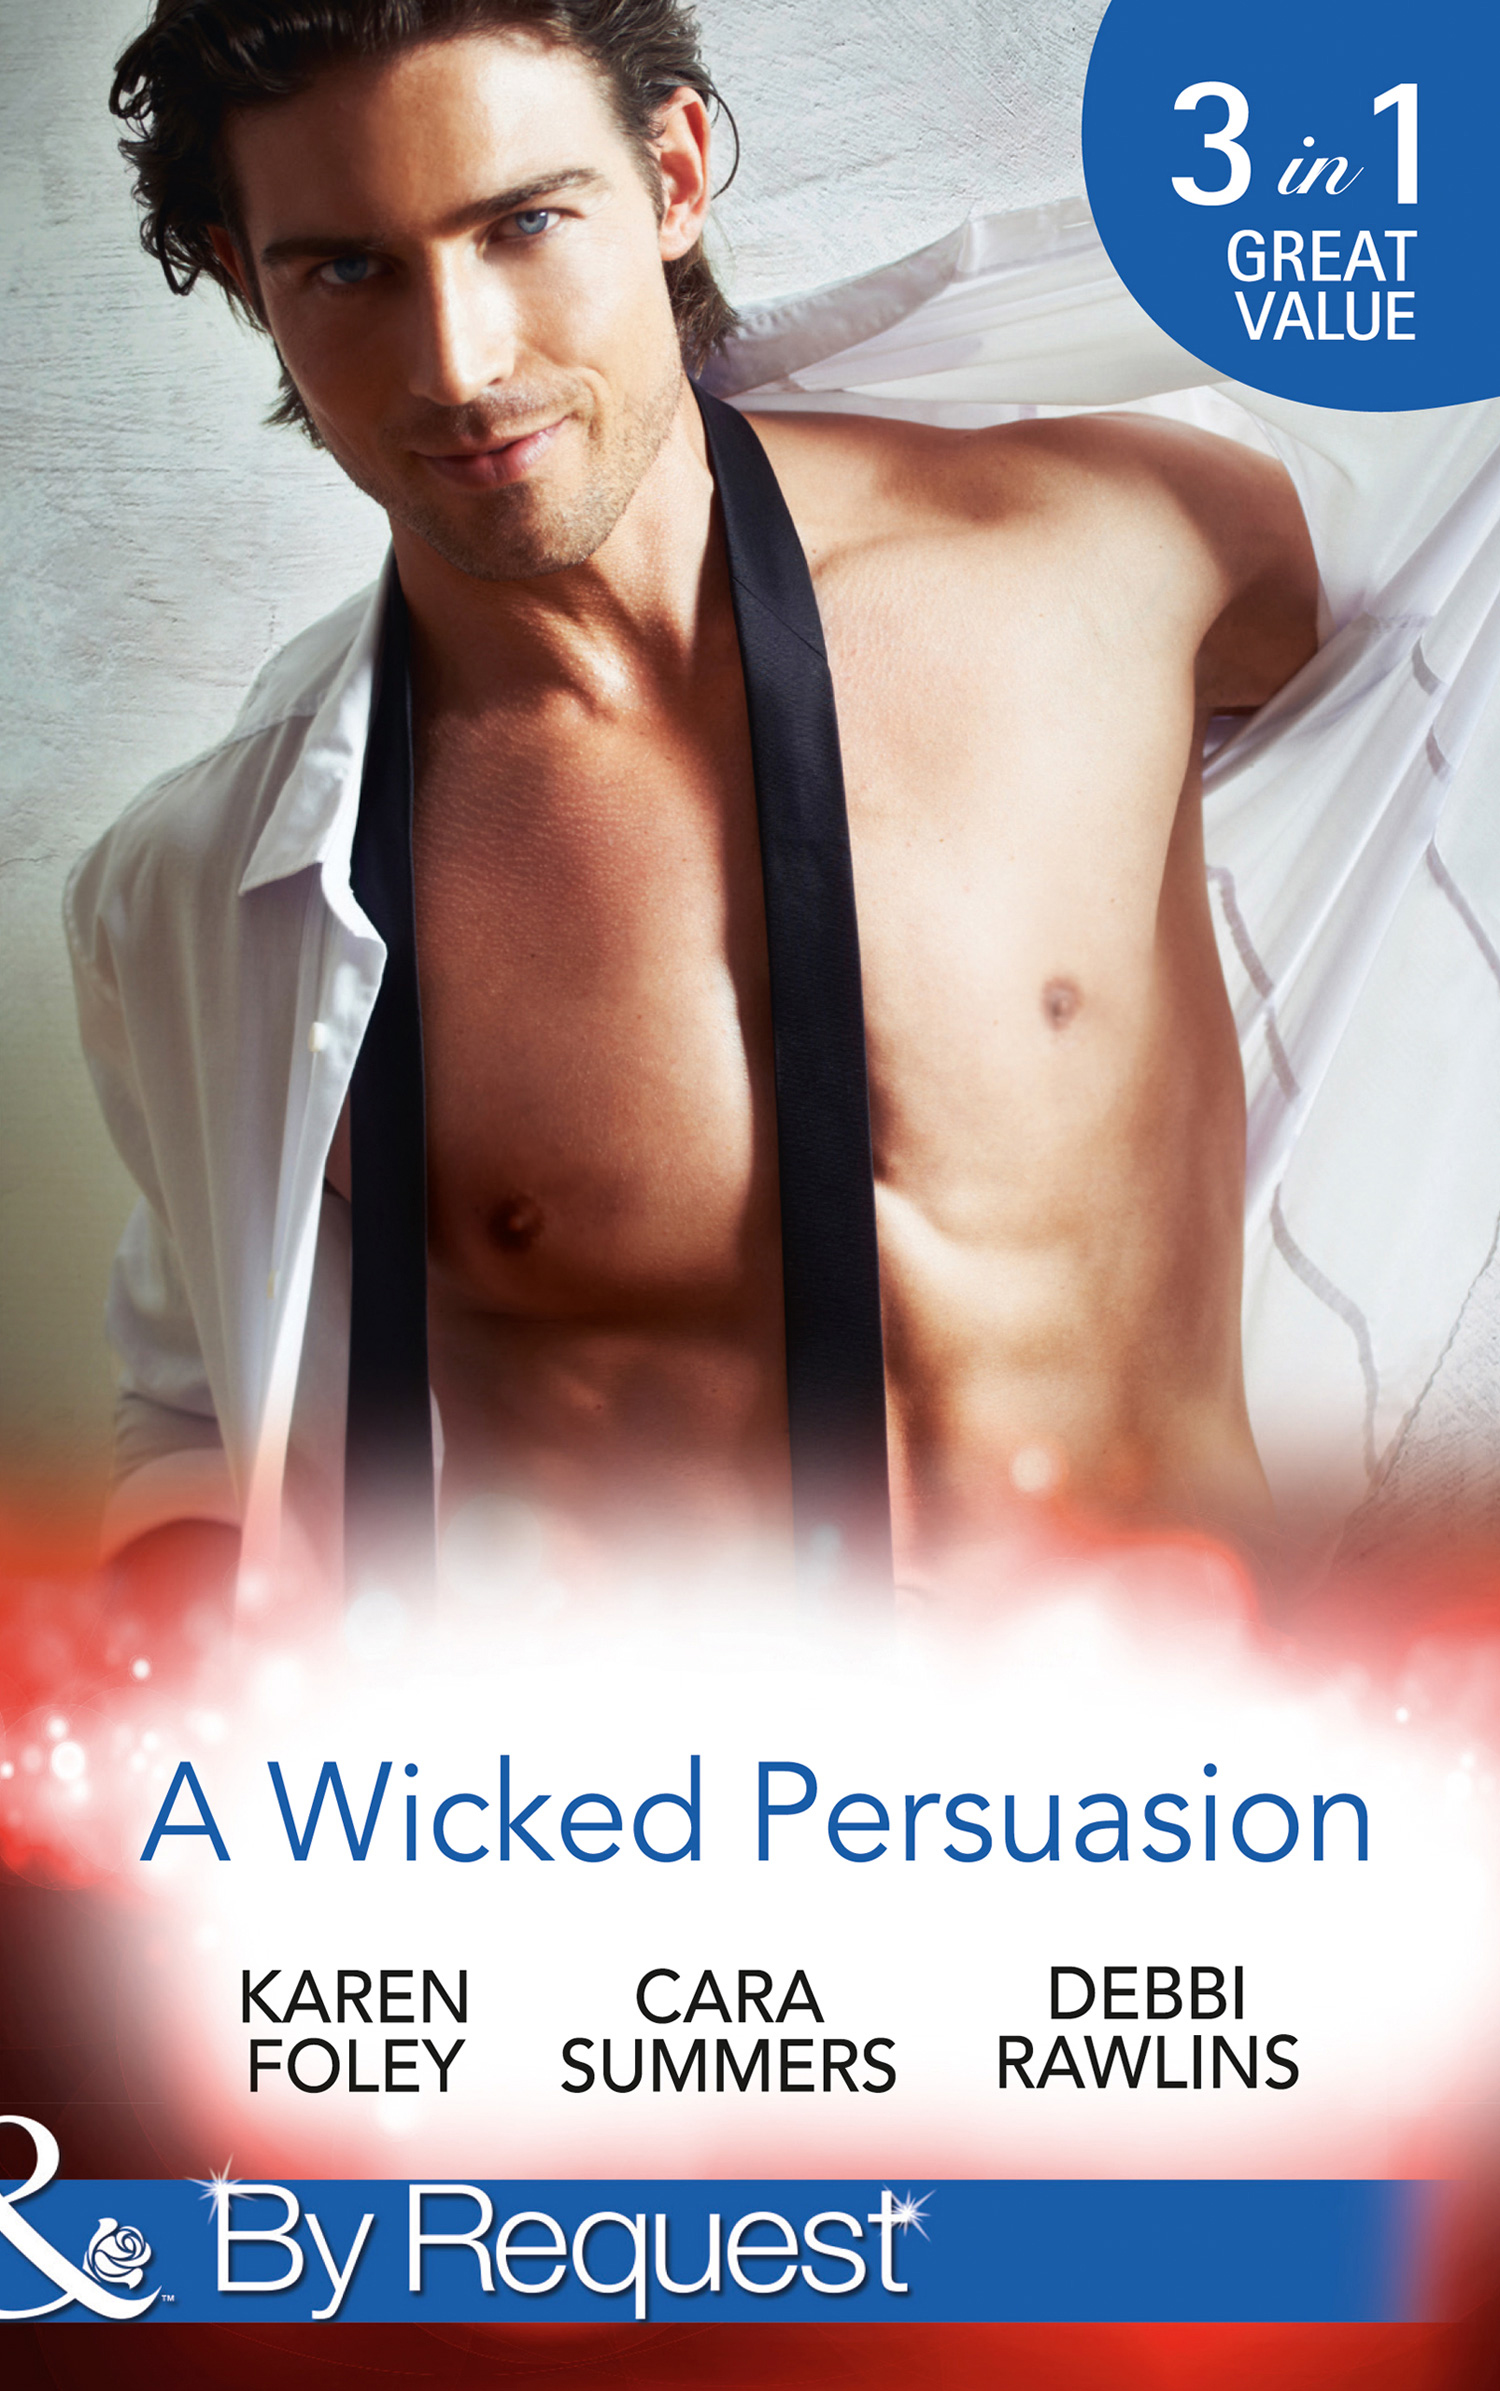 A Wicked Persuasion